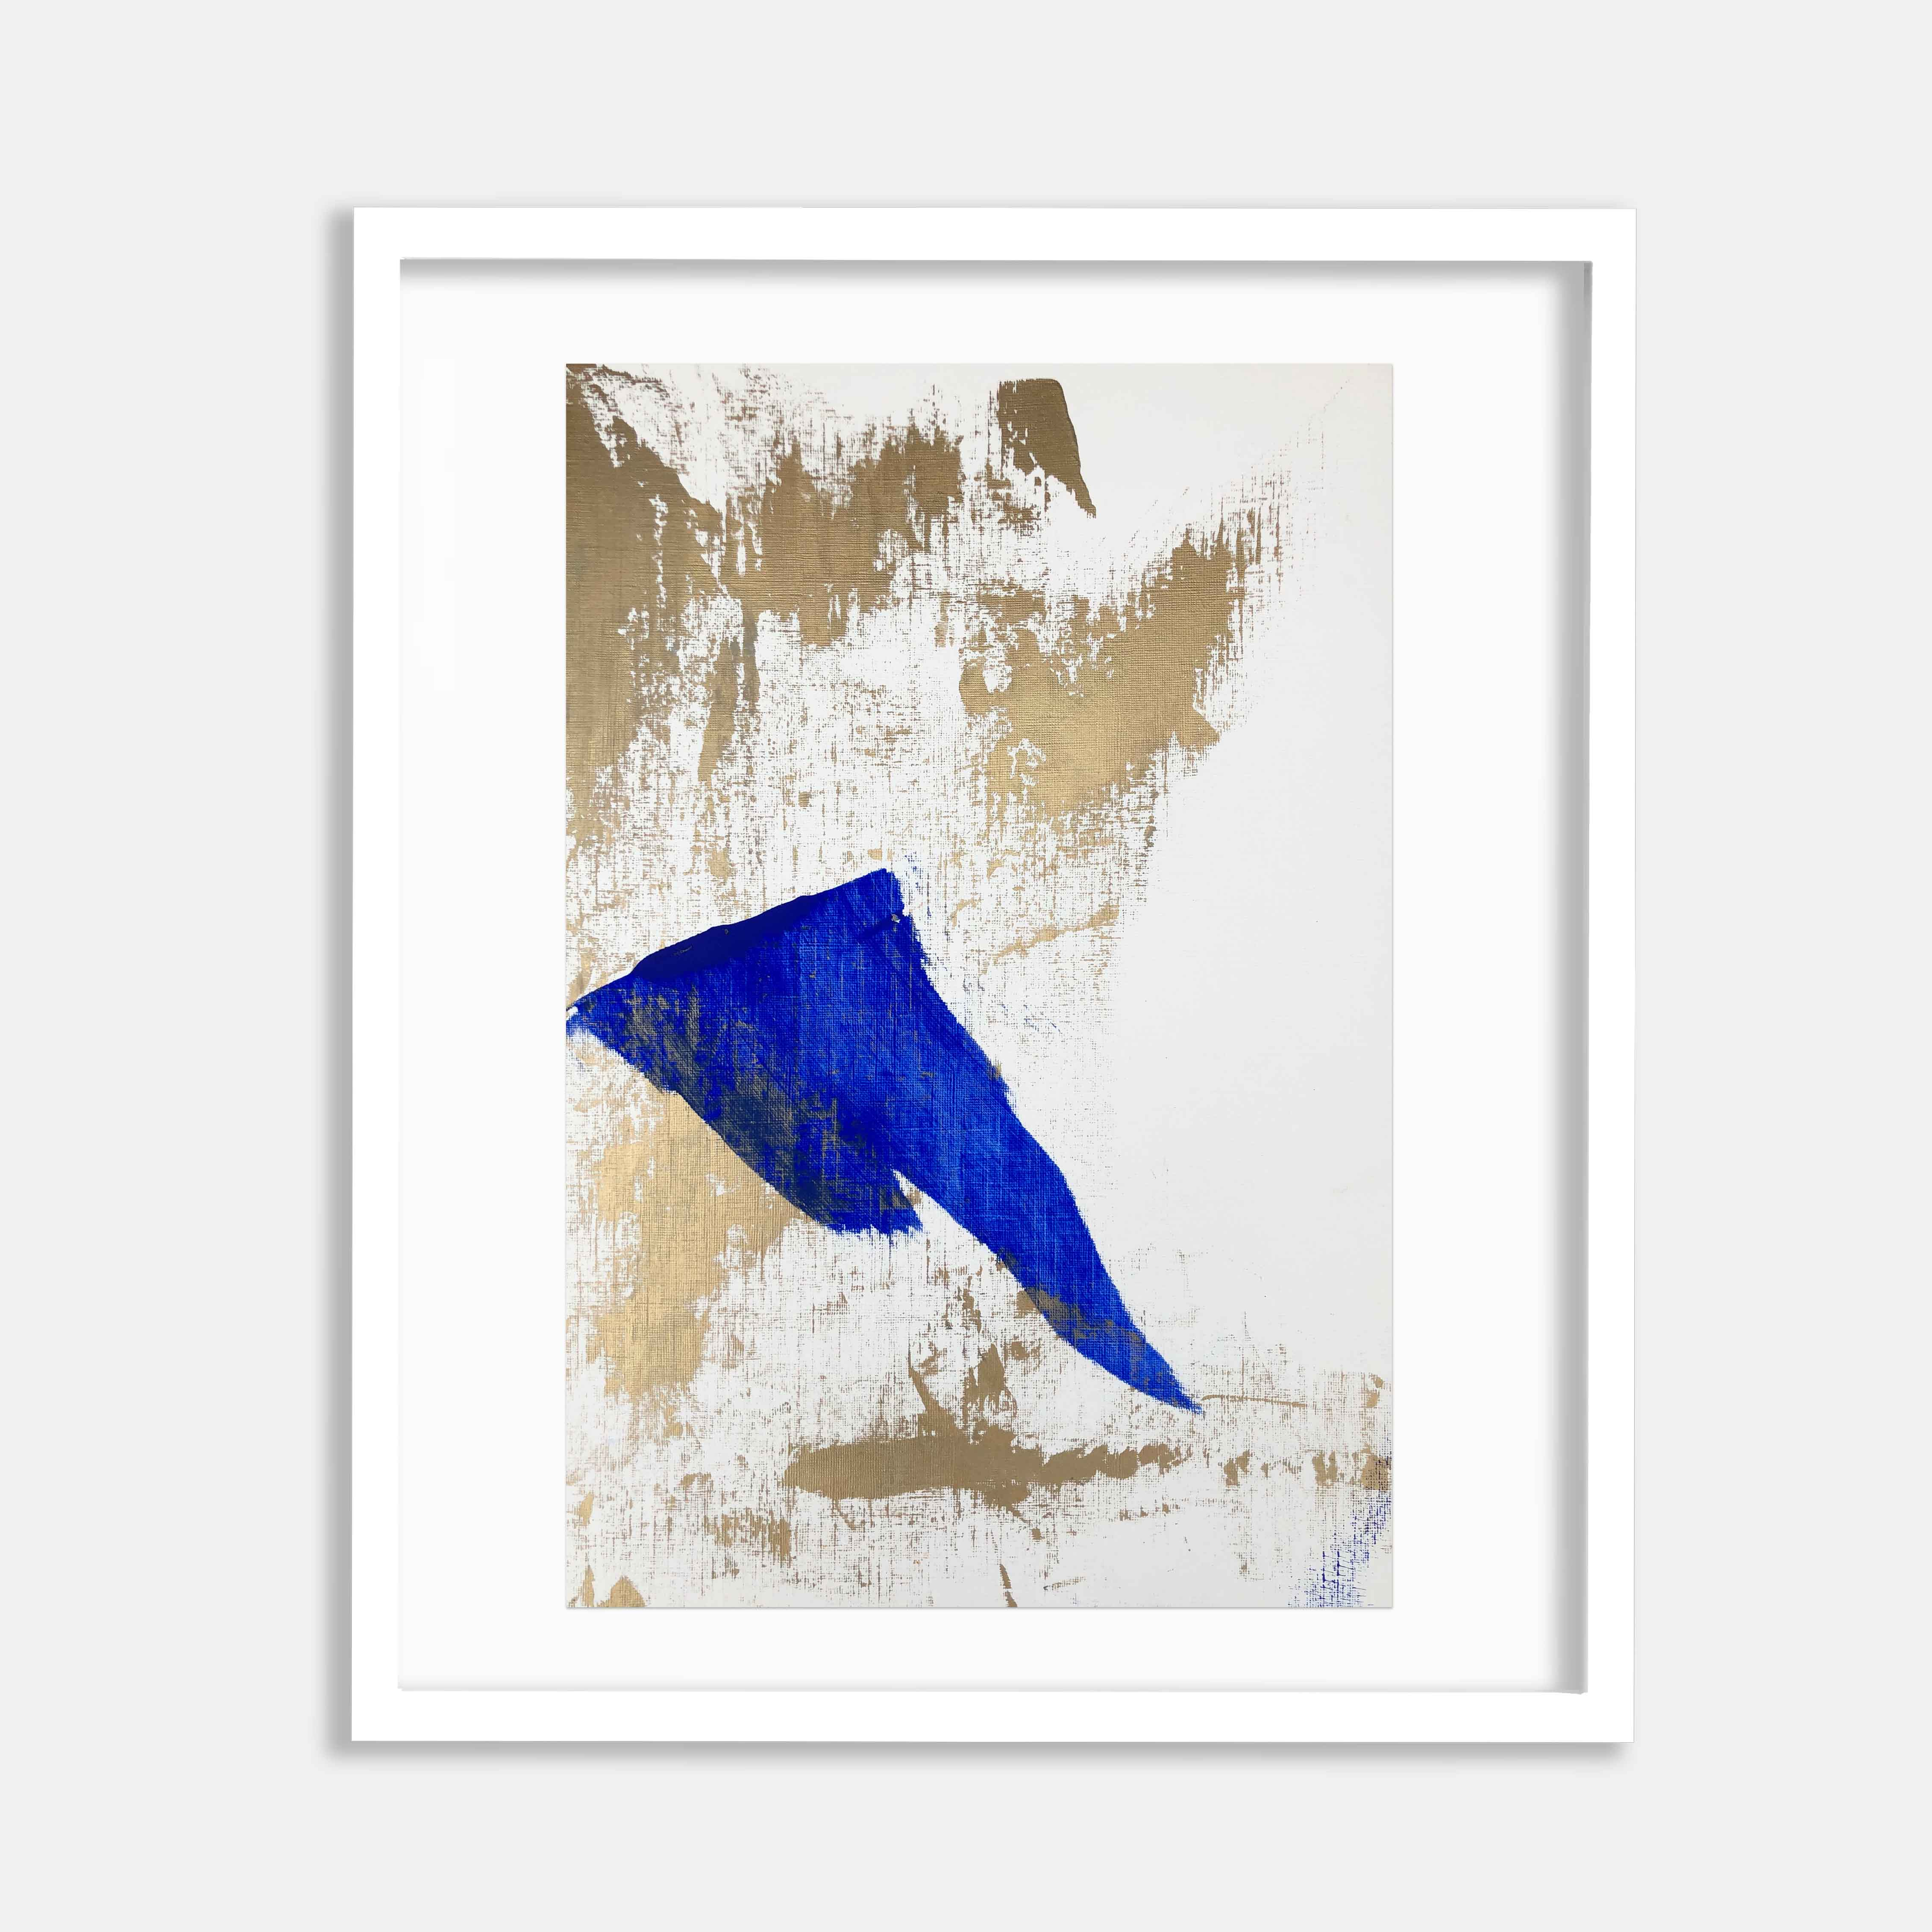 Untitled (White Painting 18-22)